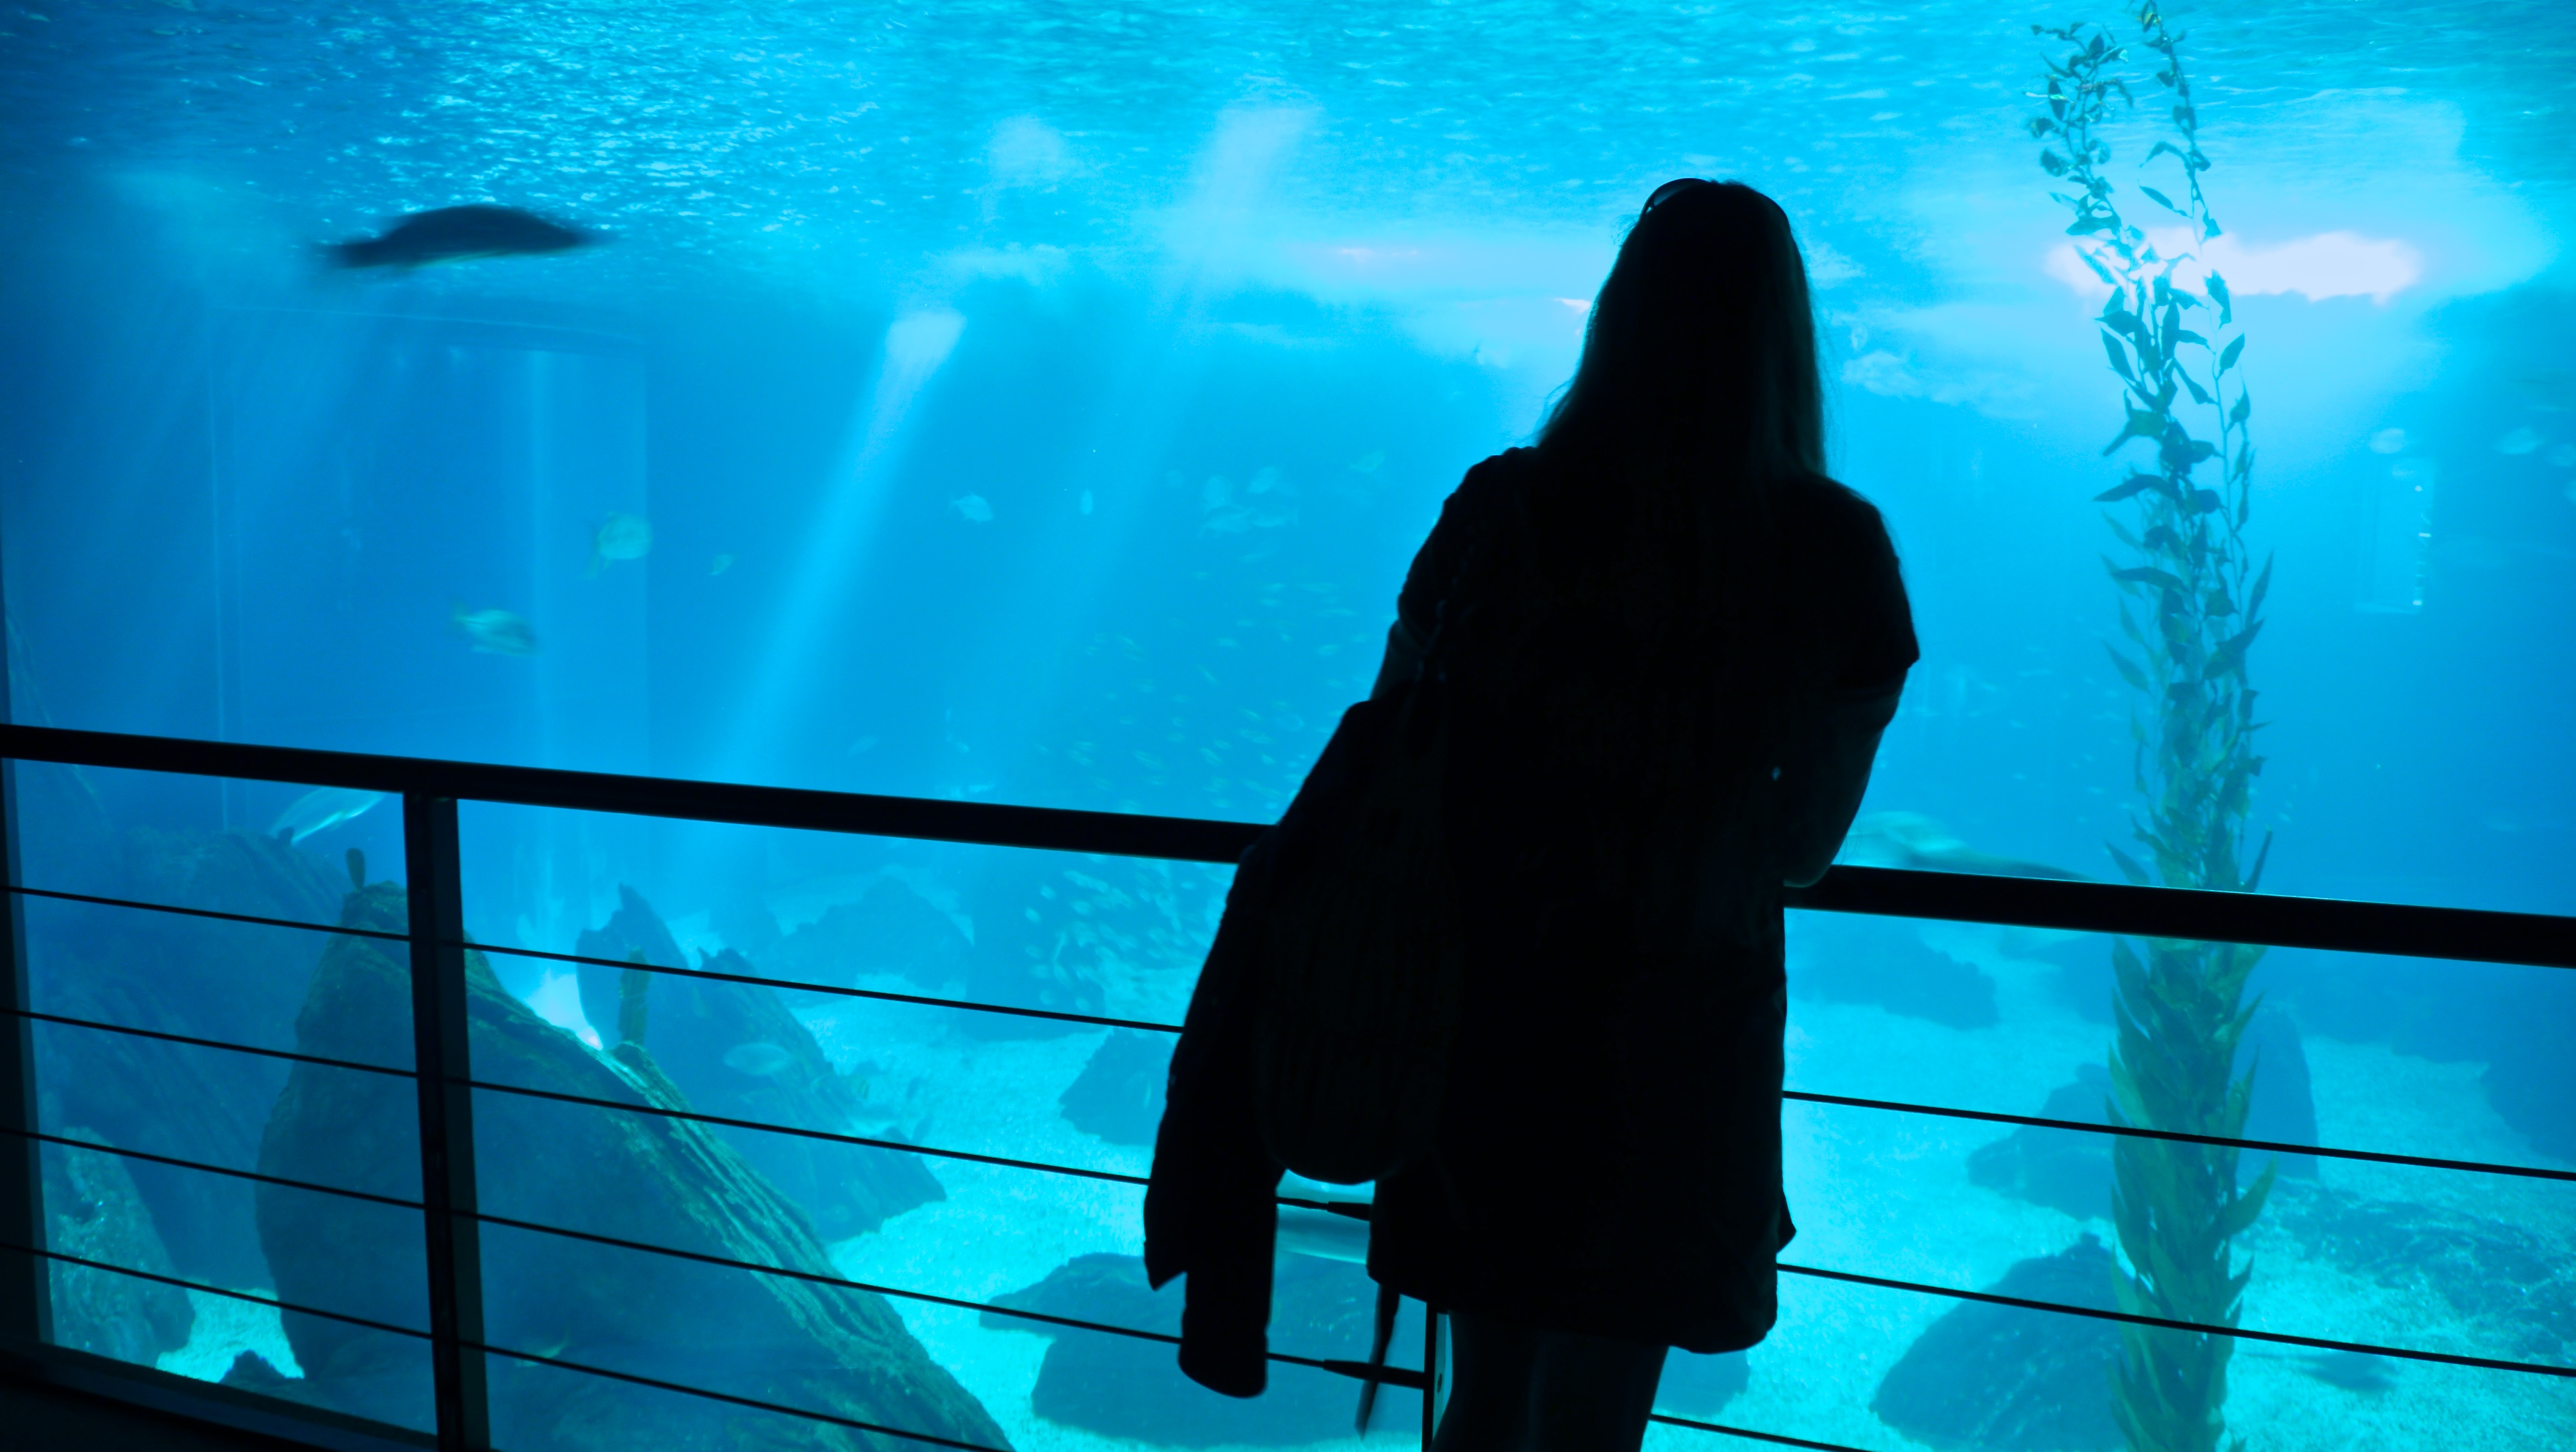 File:At Lisbon Oceanarium (5581906320).jpg - Wikimedia Commons